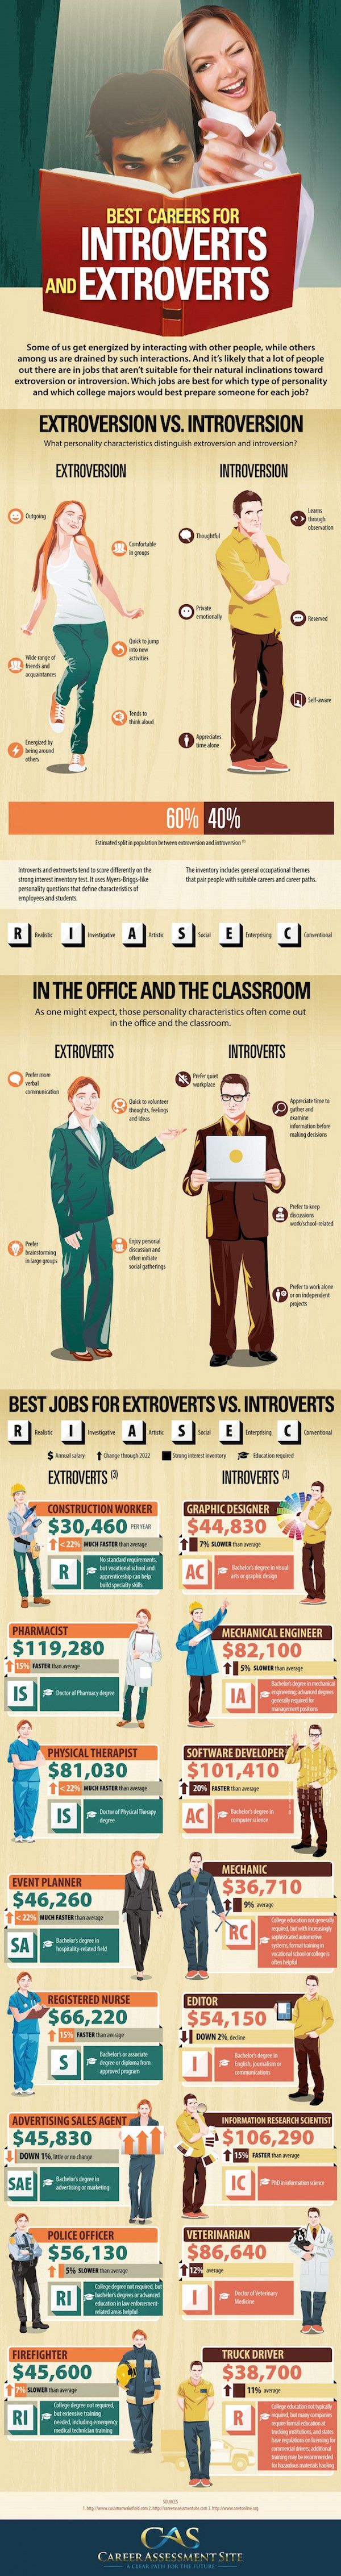 Infographic: The Best Careers For Introverts And Extroverts - DesignTAXI.com